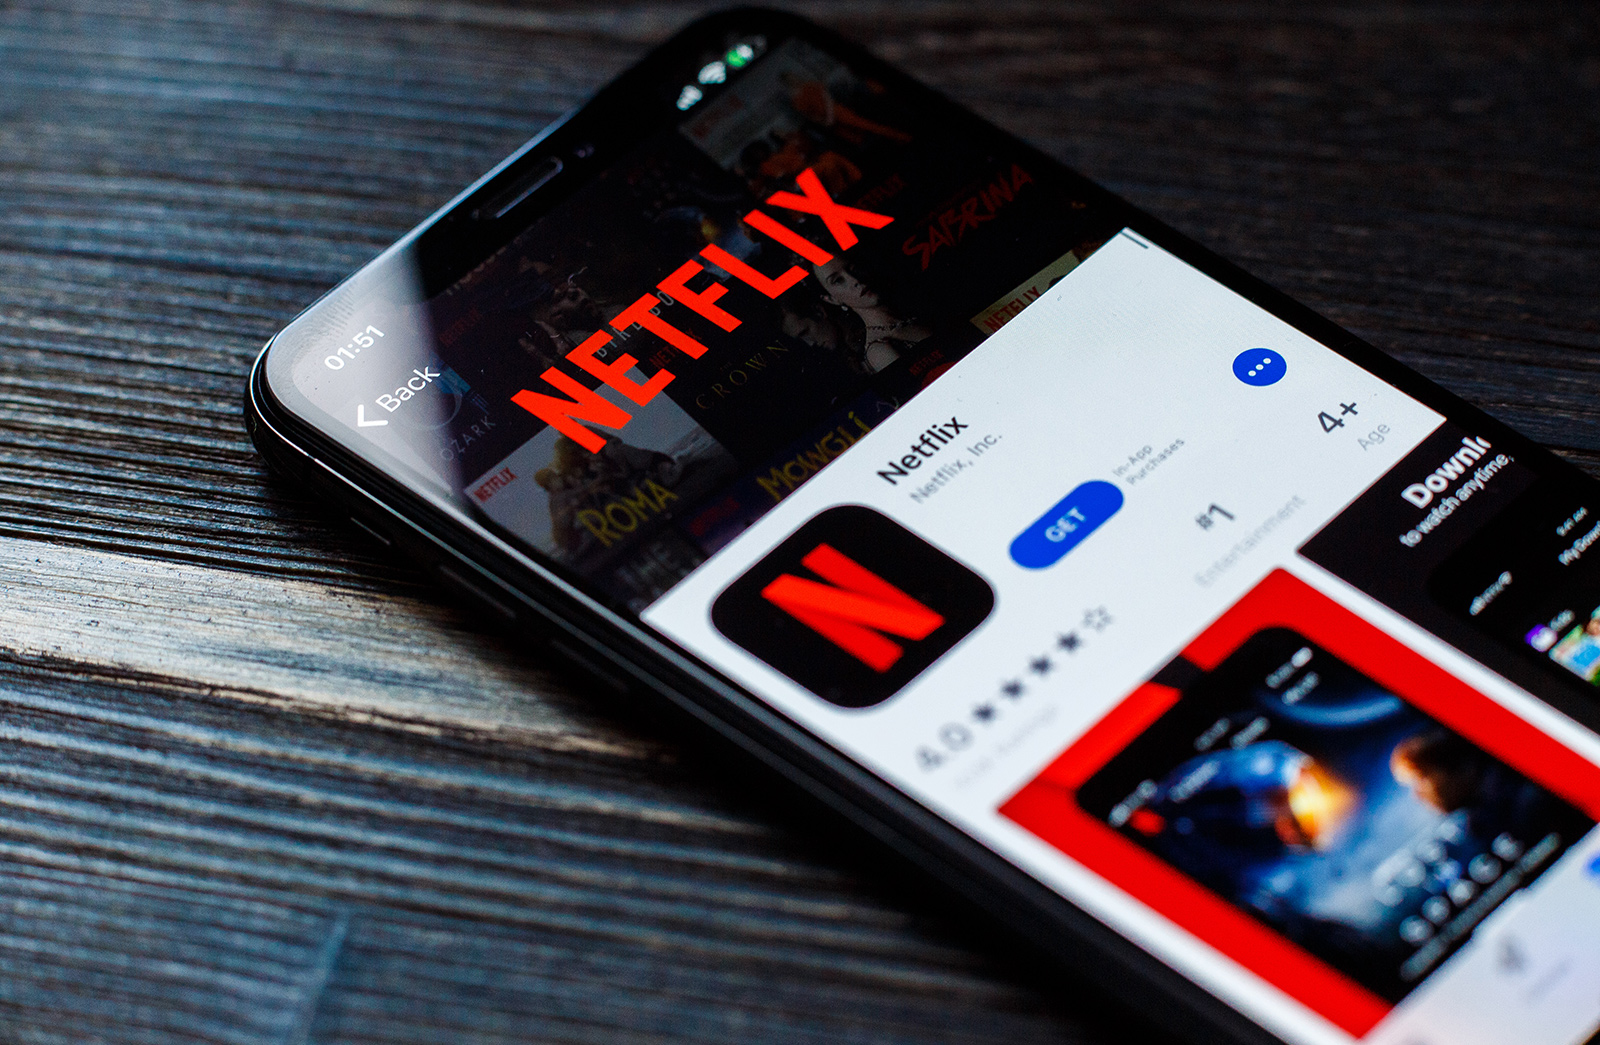 Netflix S Top 10 Movies Of June 2020 Has A Big Surprise At 1 Bgr